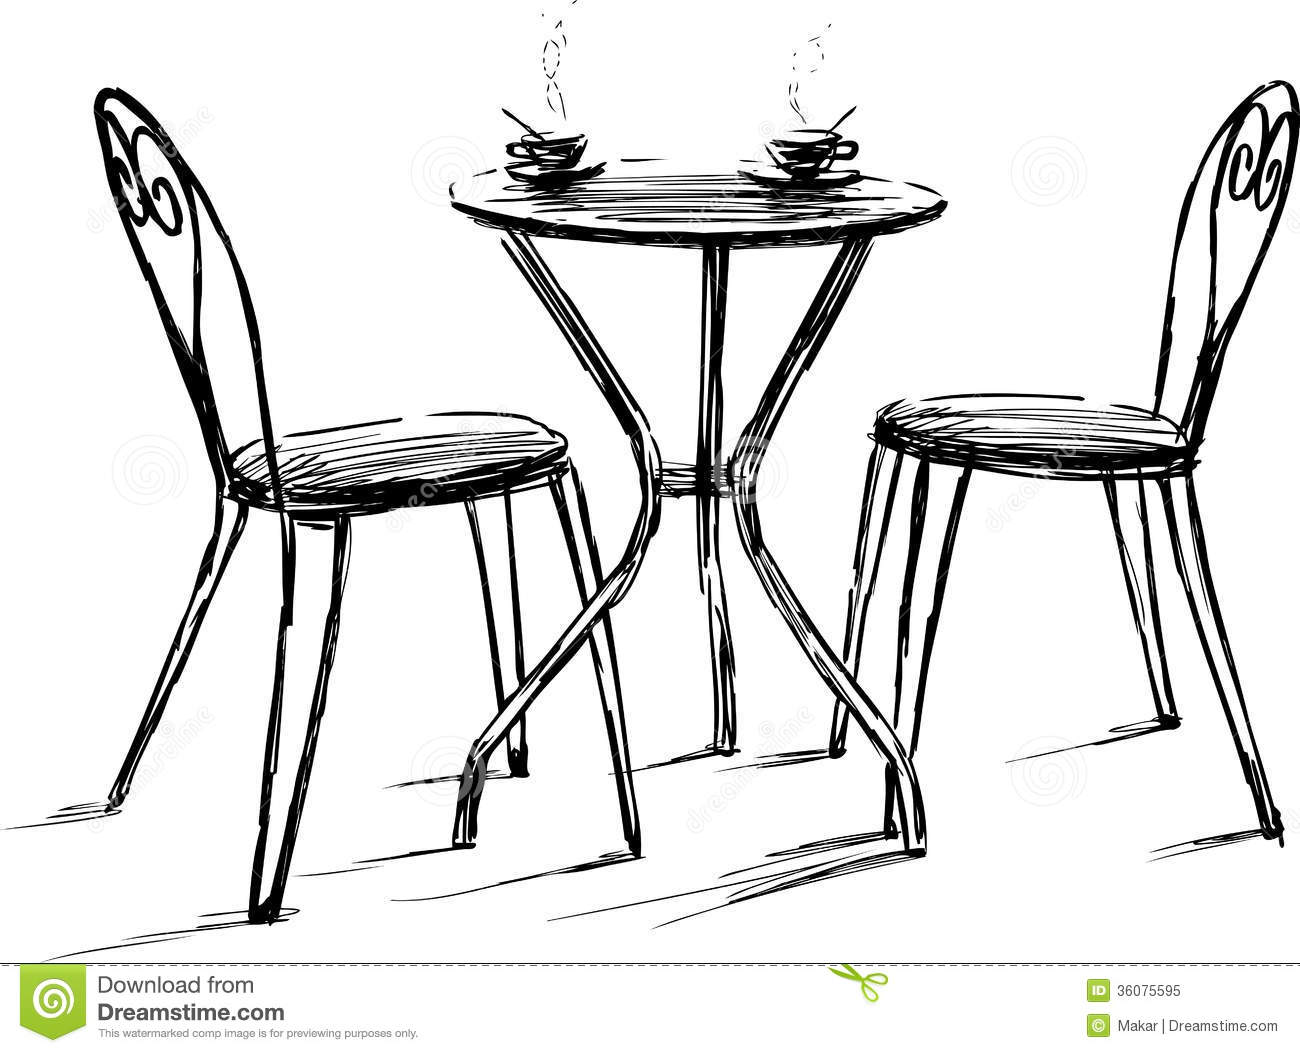 Plan Furniture Vector Free New Design Woodworking